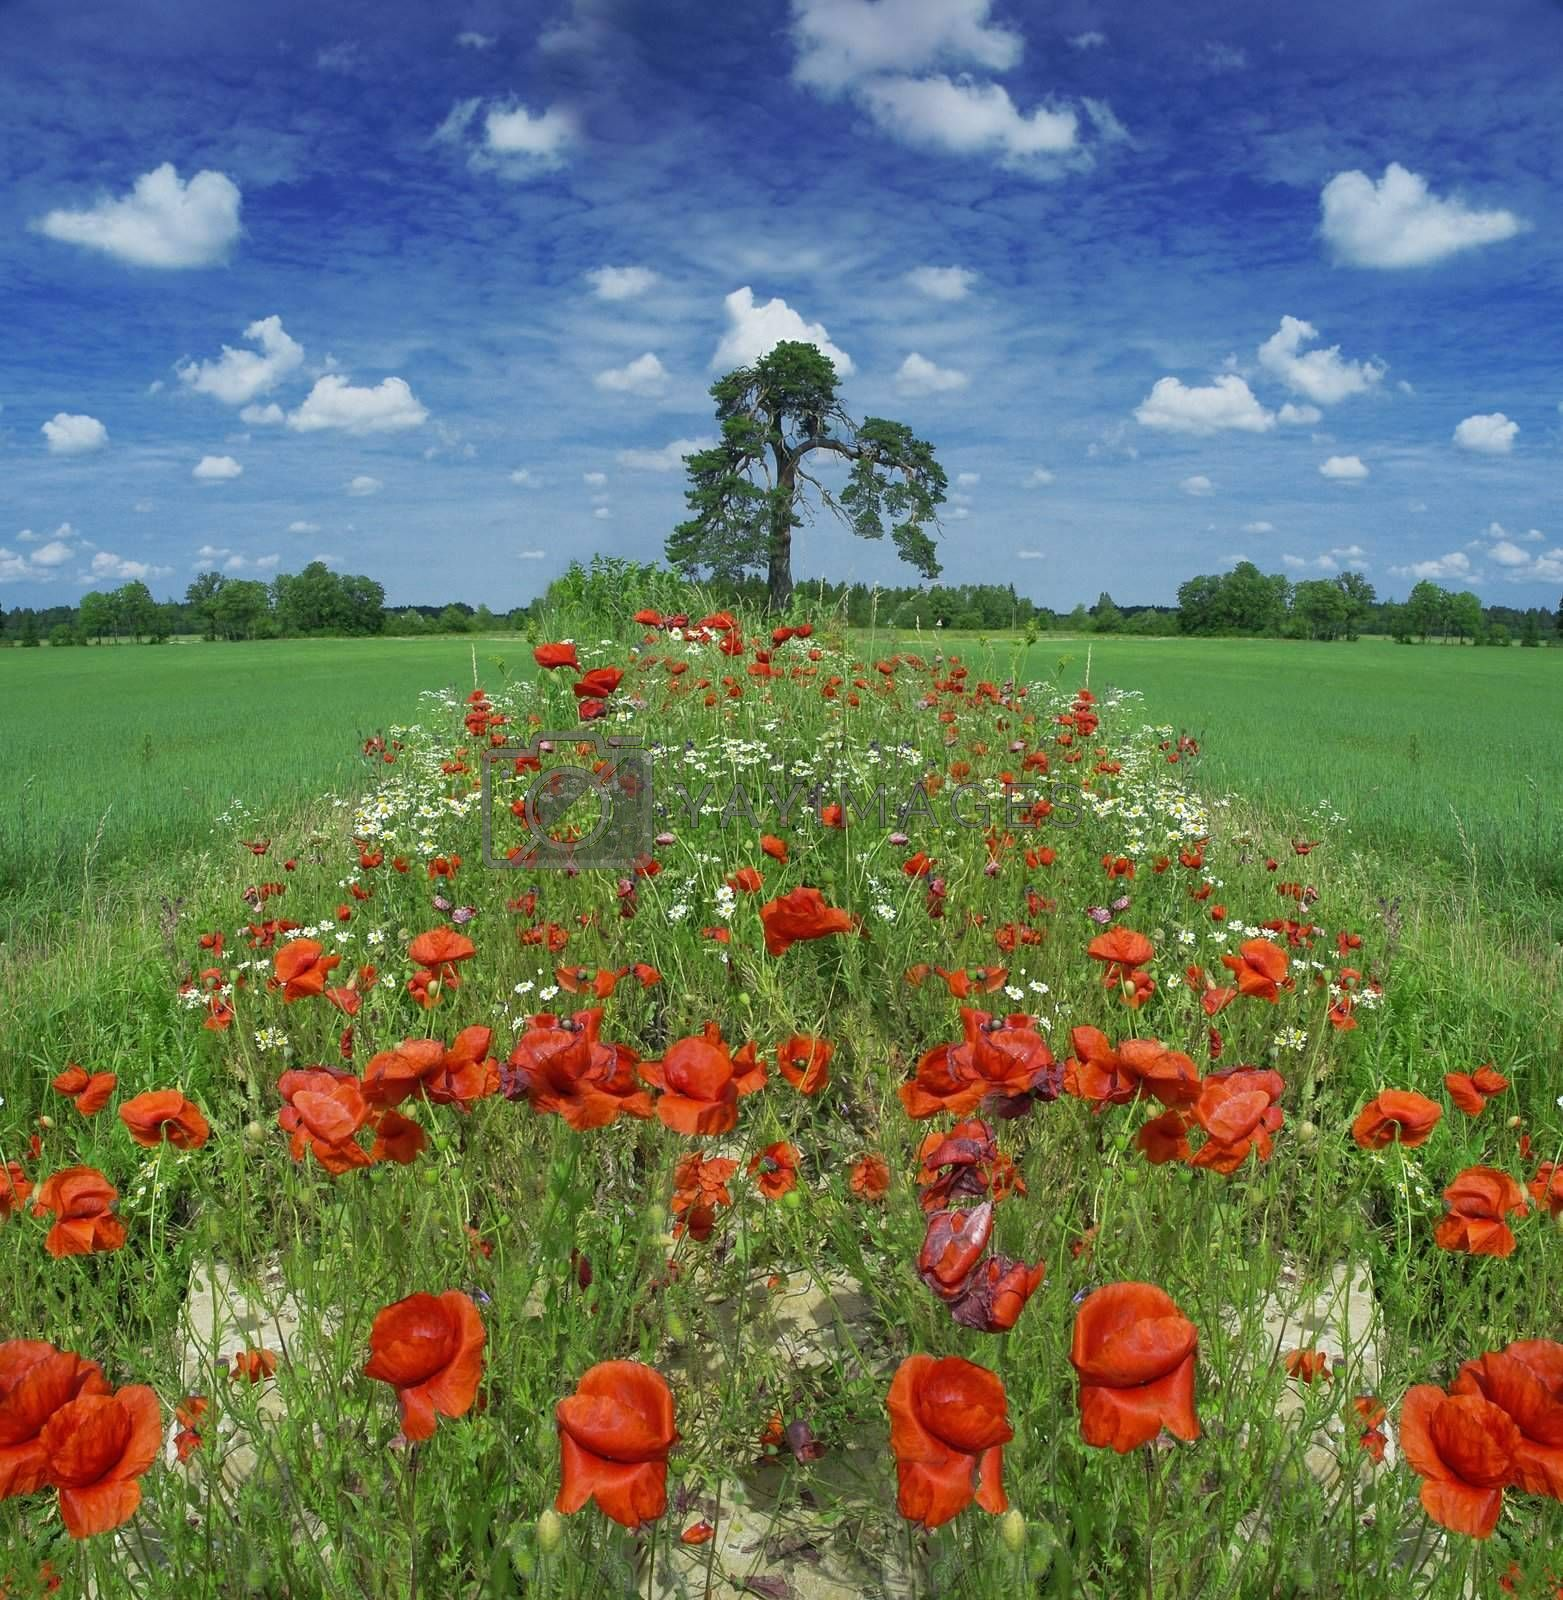 The picturesque dark dark blue sky with clouds a meadow and blossoming red poppies in the foreground. A collage.